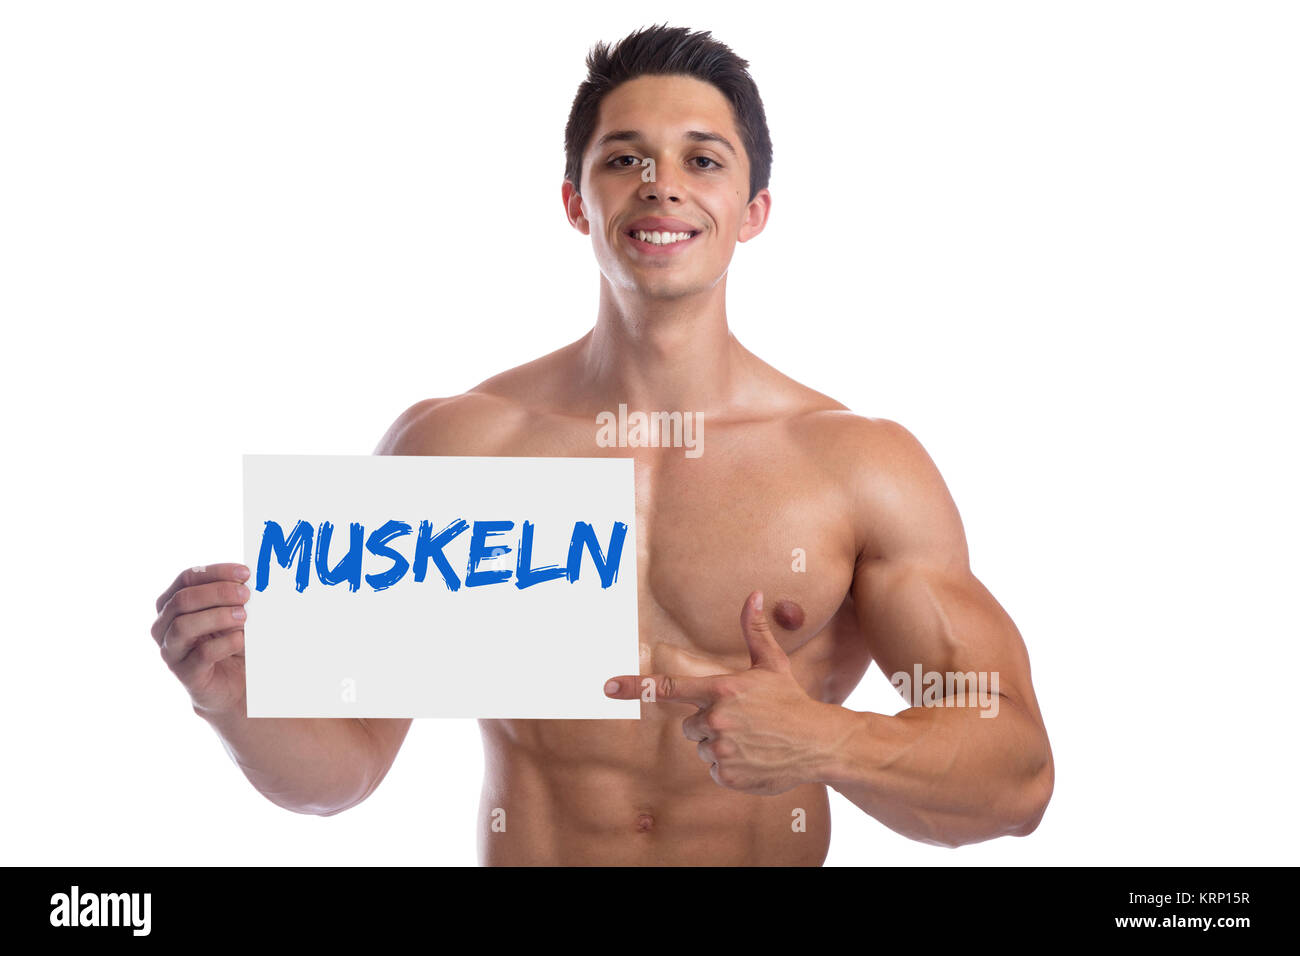 Bodybuilder bodybuilding muscle muscles shield musculation homme strong muscular young cut Photo Stock